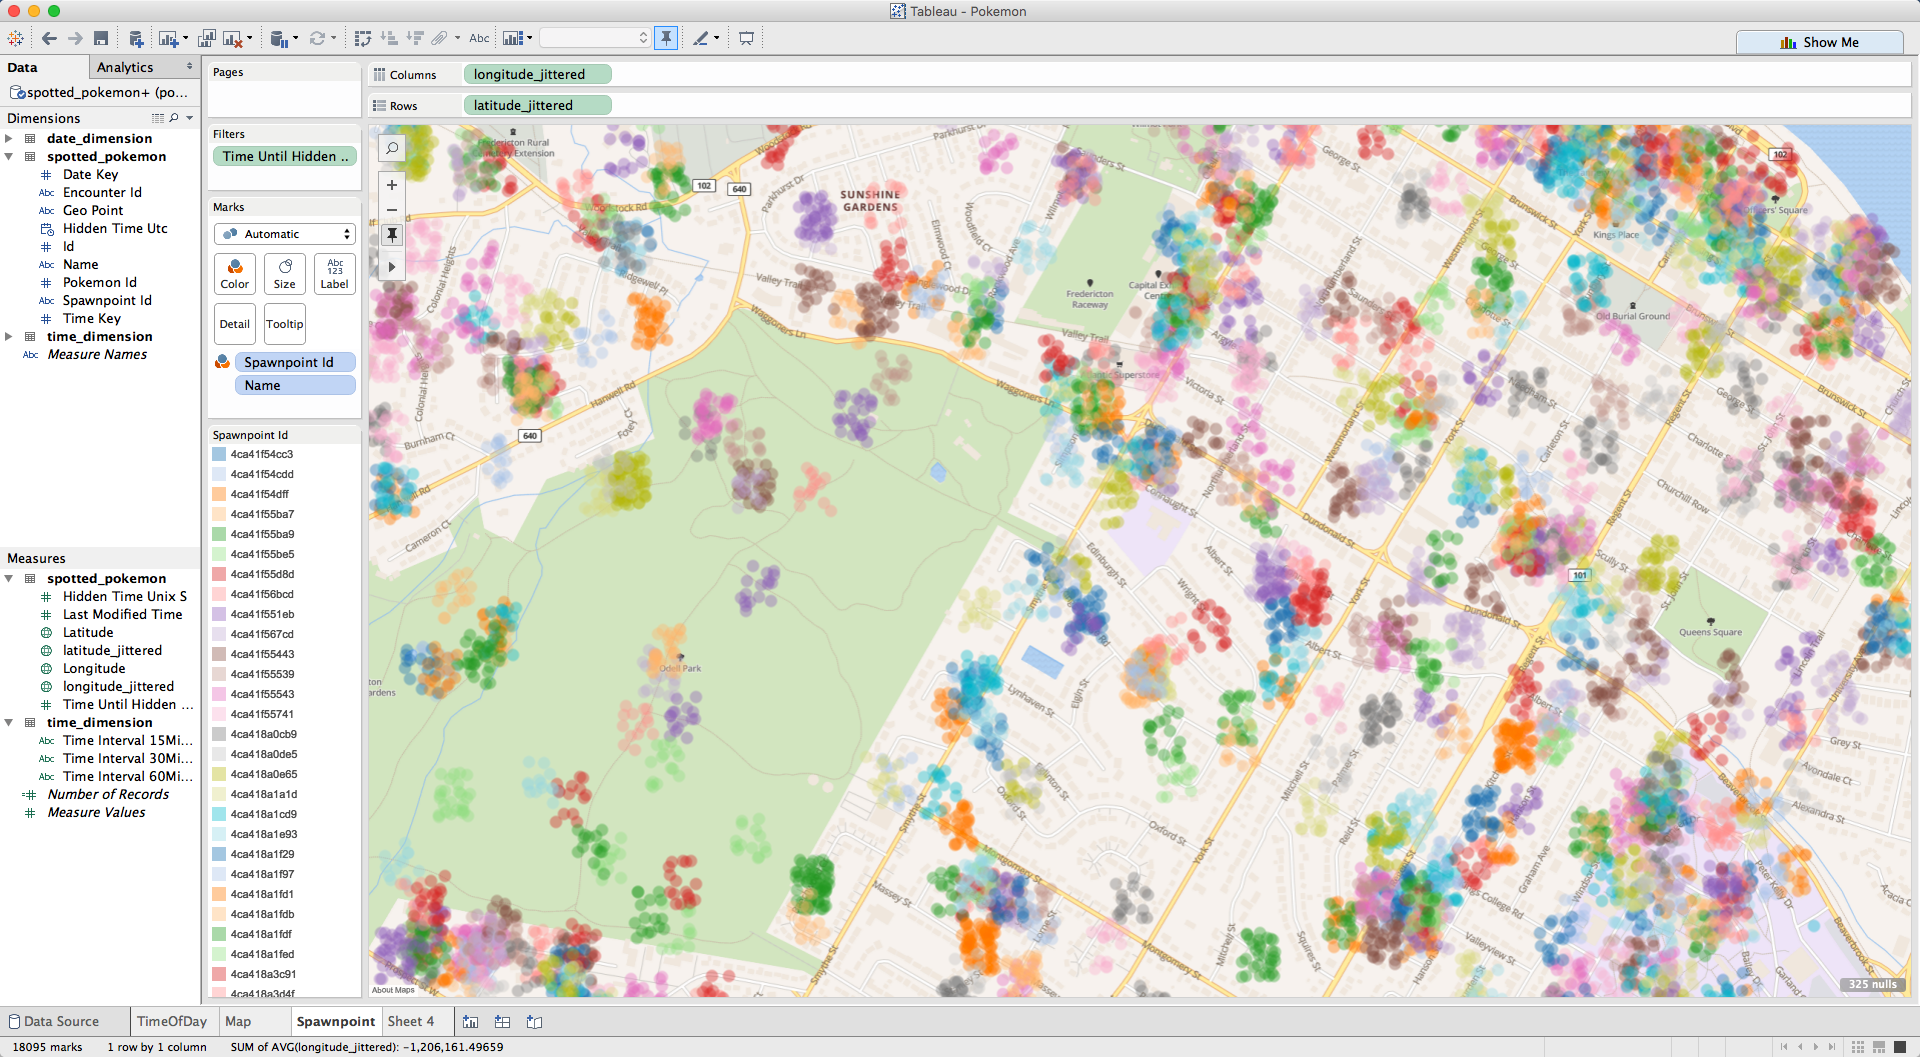 Tableau Screenshot of Spawn Points